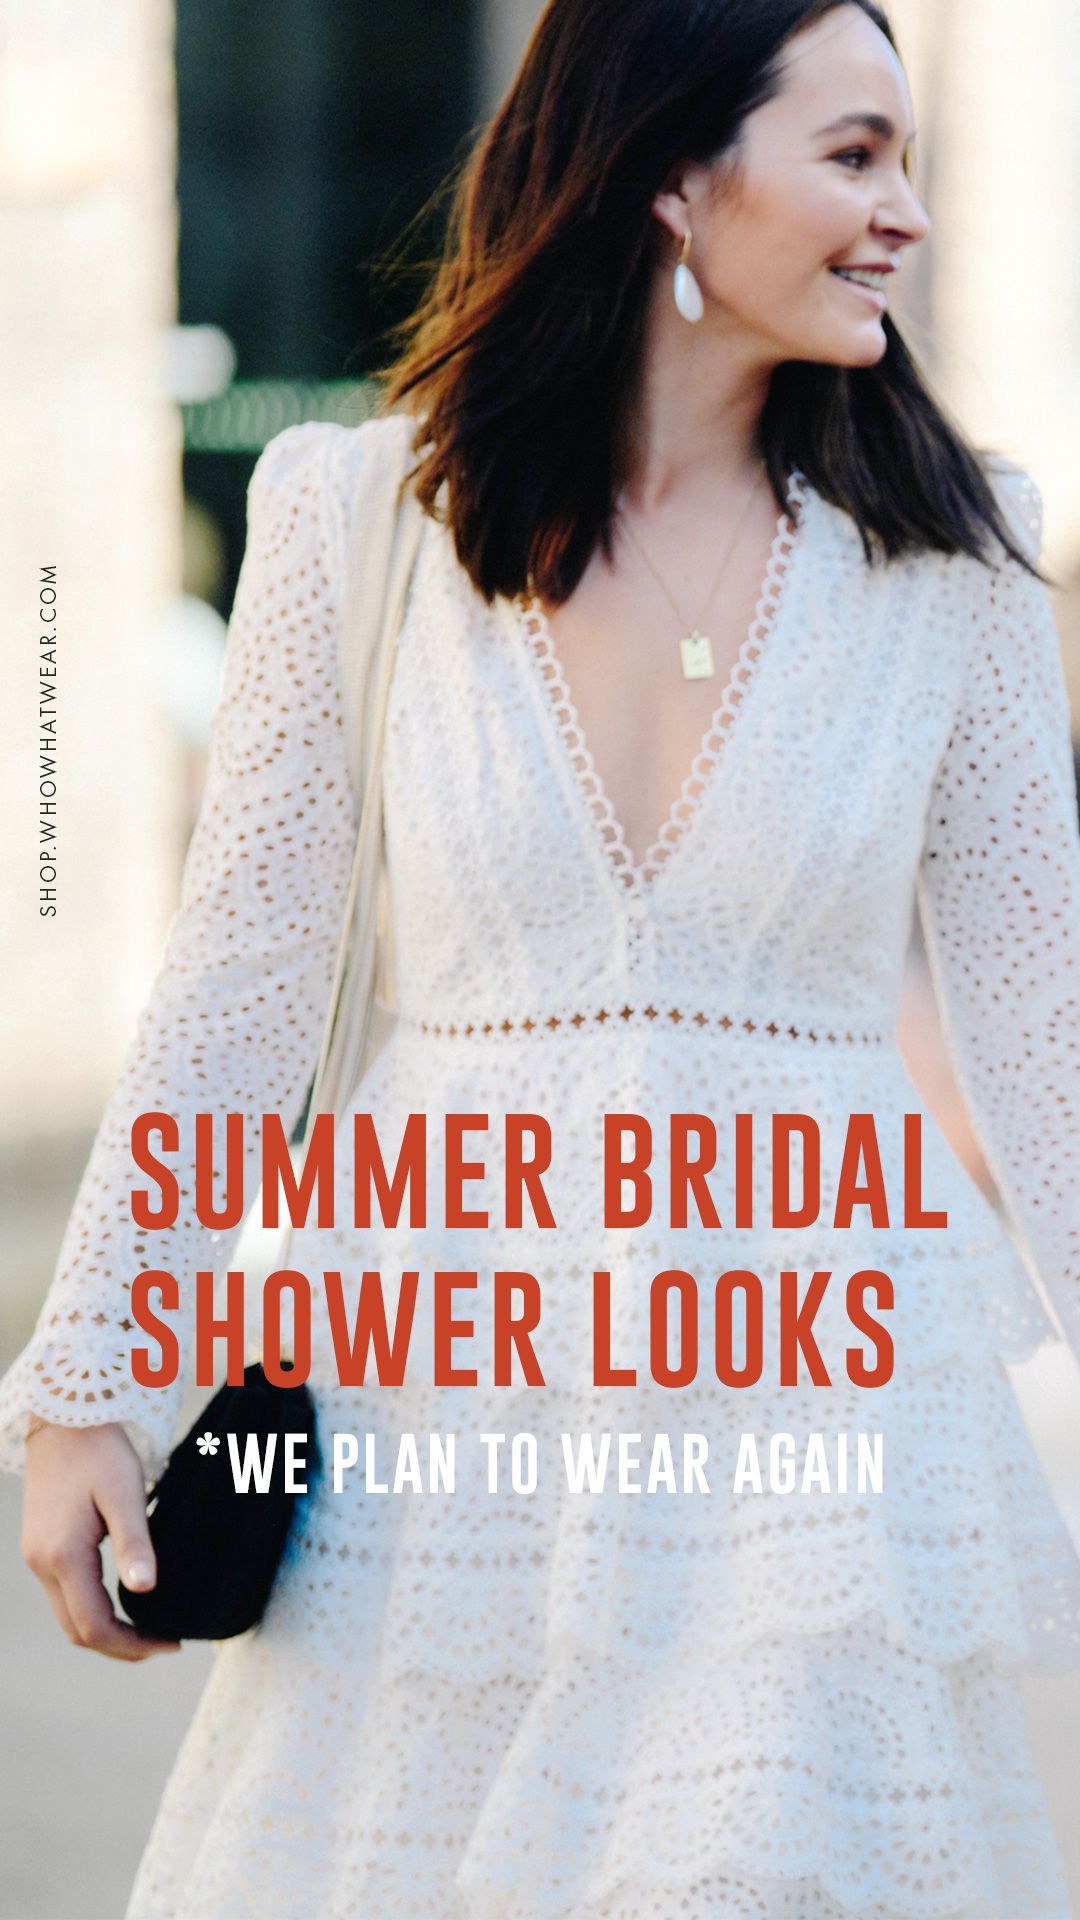 Heres What To Wear To A Summer Bridal Shower